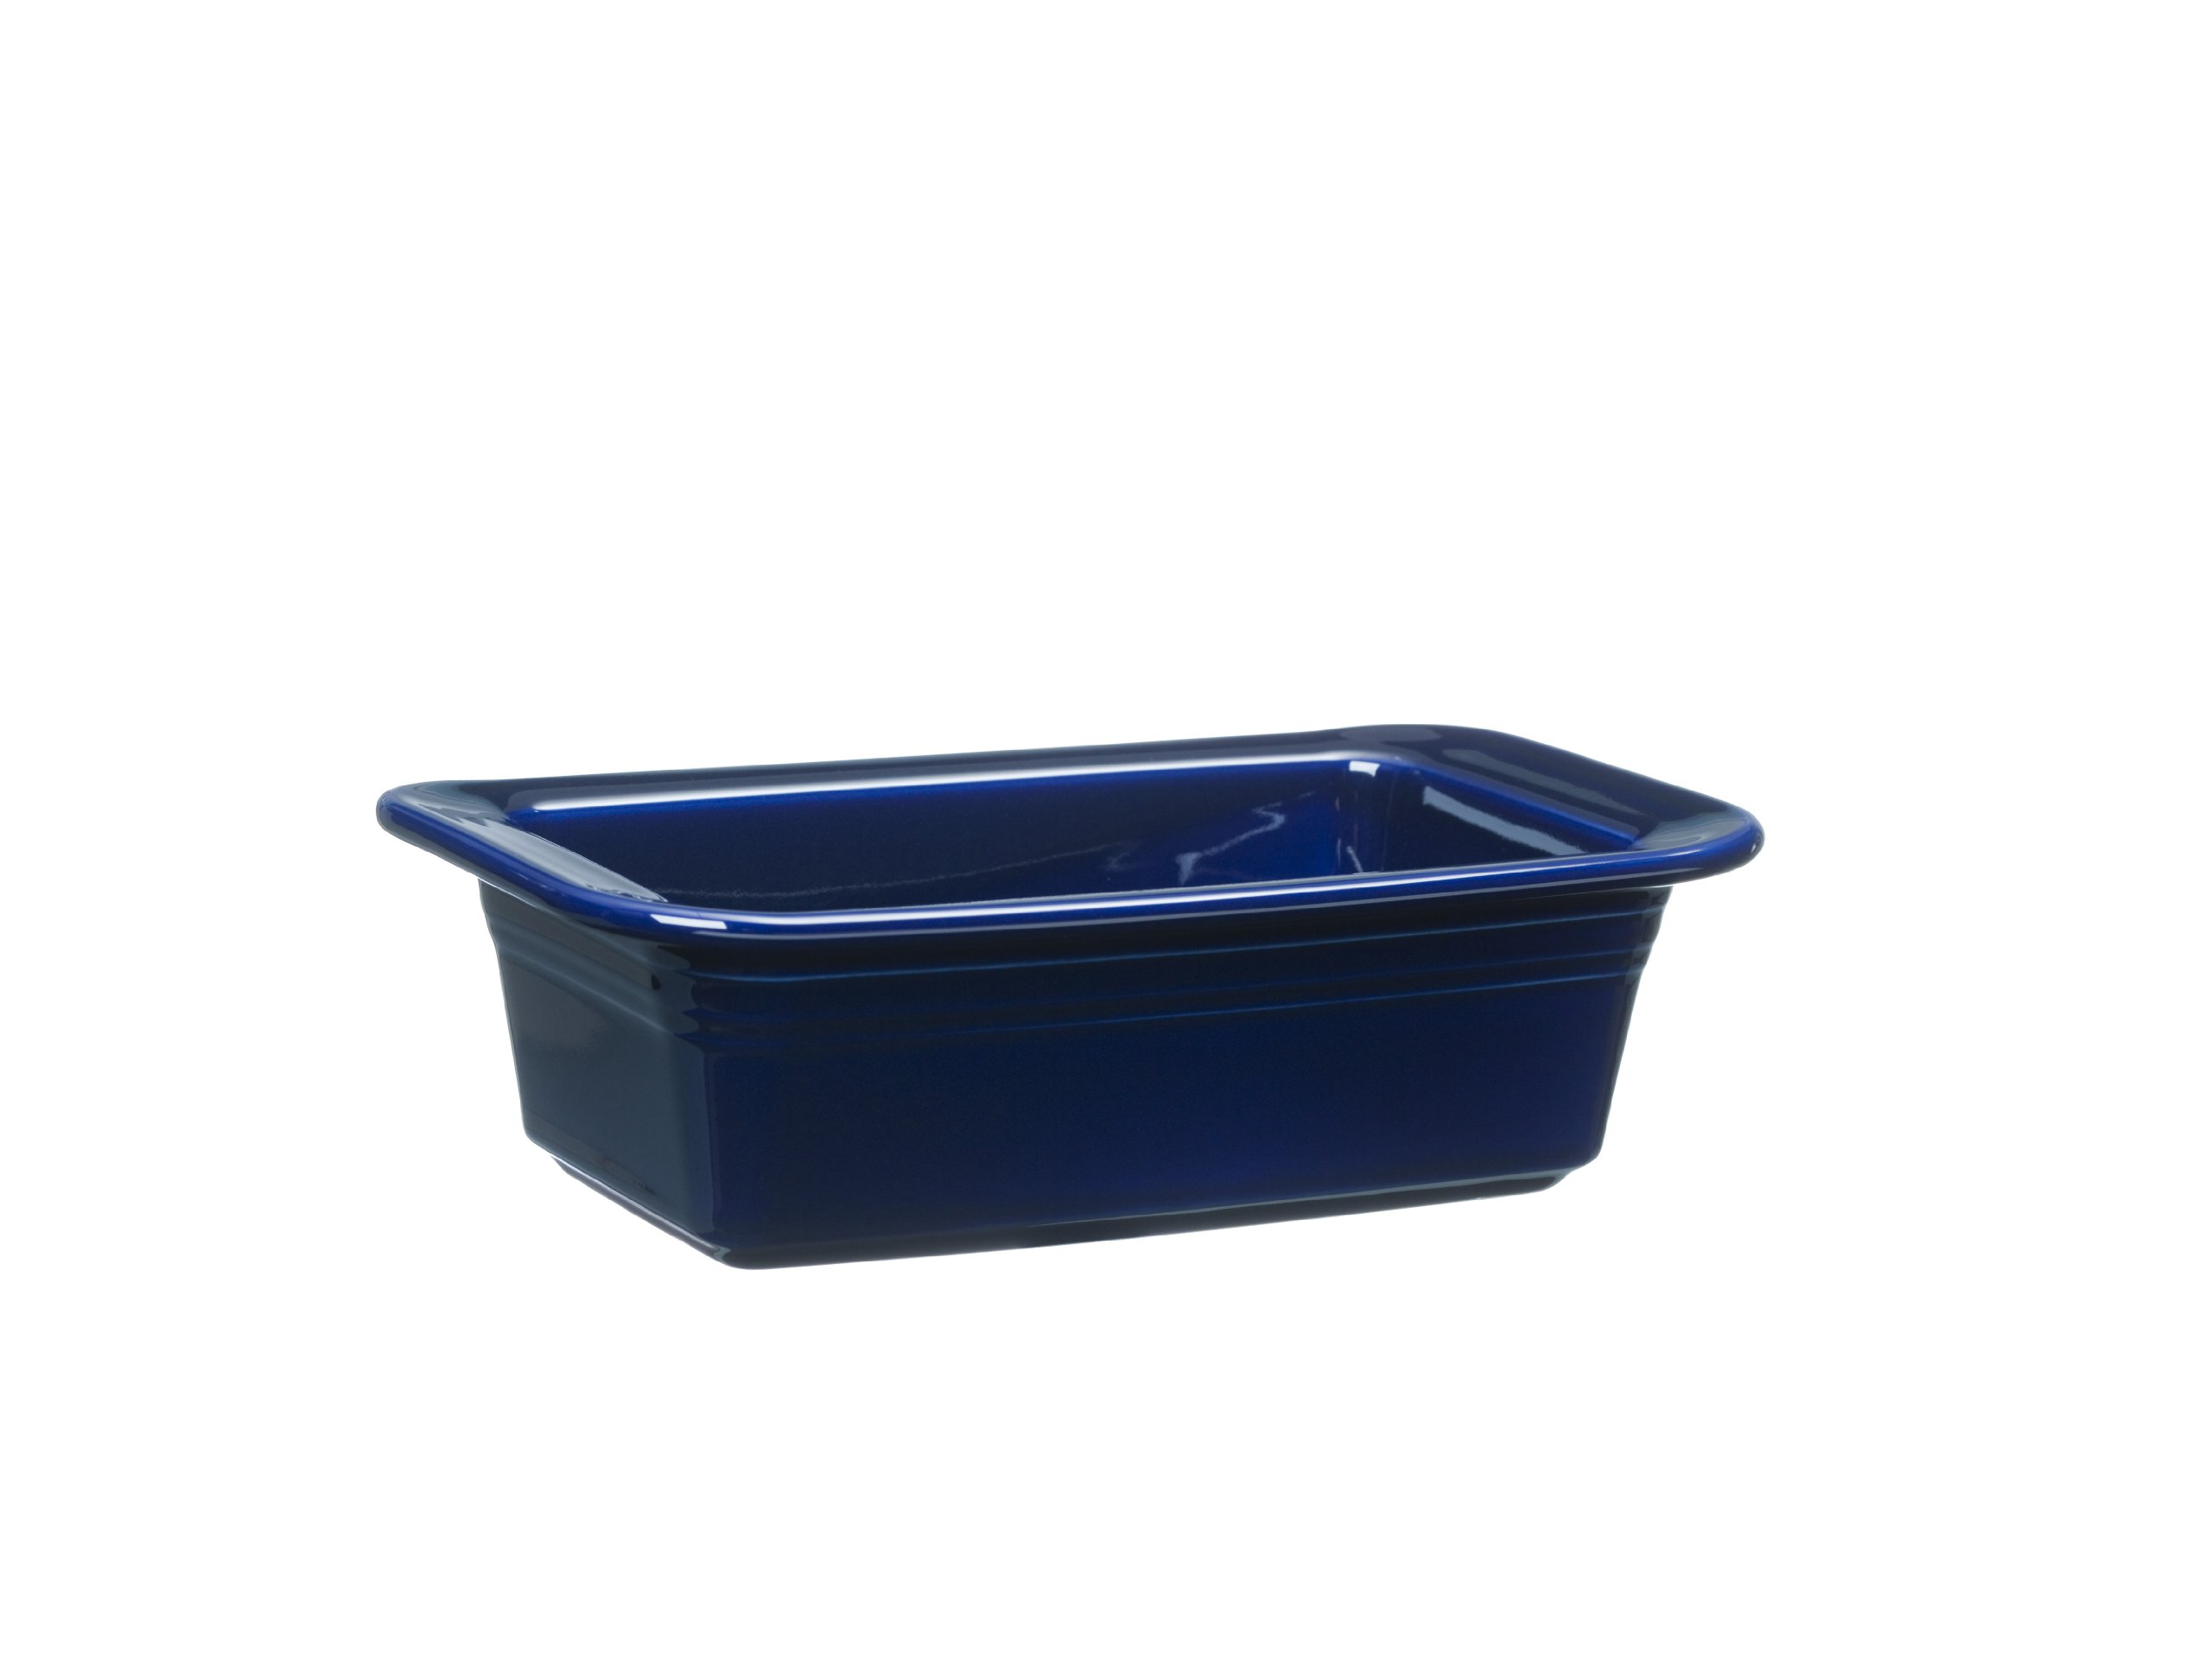 Fiesta 813-105 Loaf Pan, 5-3/4-Inch by 10-3/4-Inch, Cobalt by Homer Laughlin (Image #1)